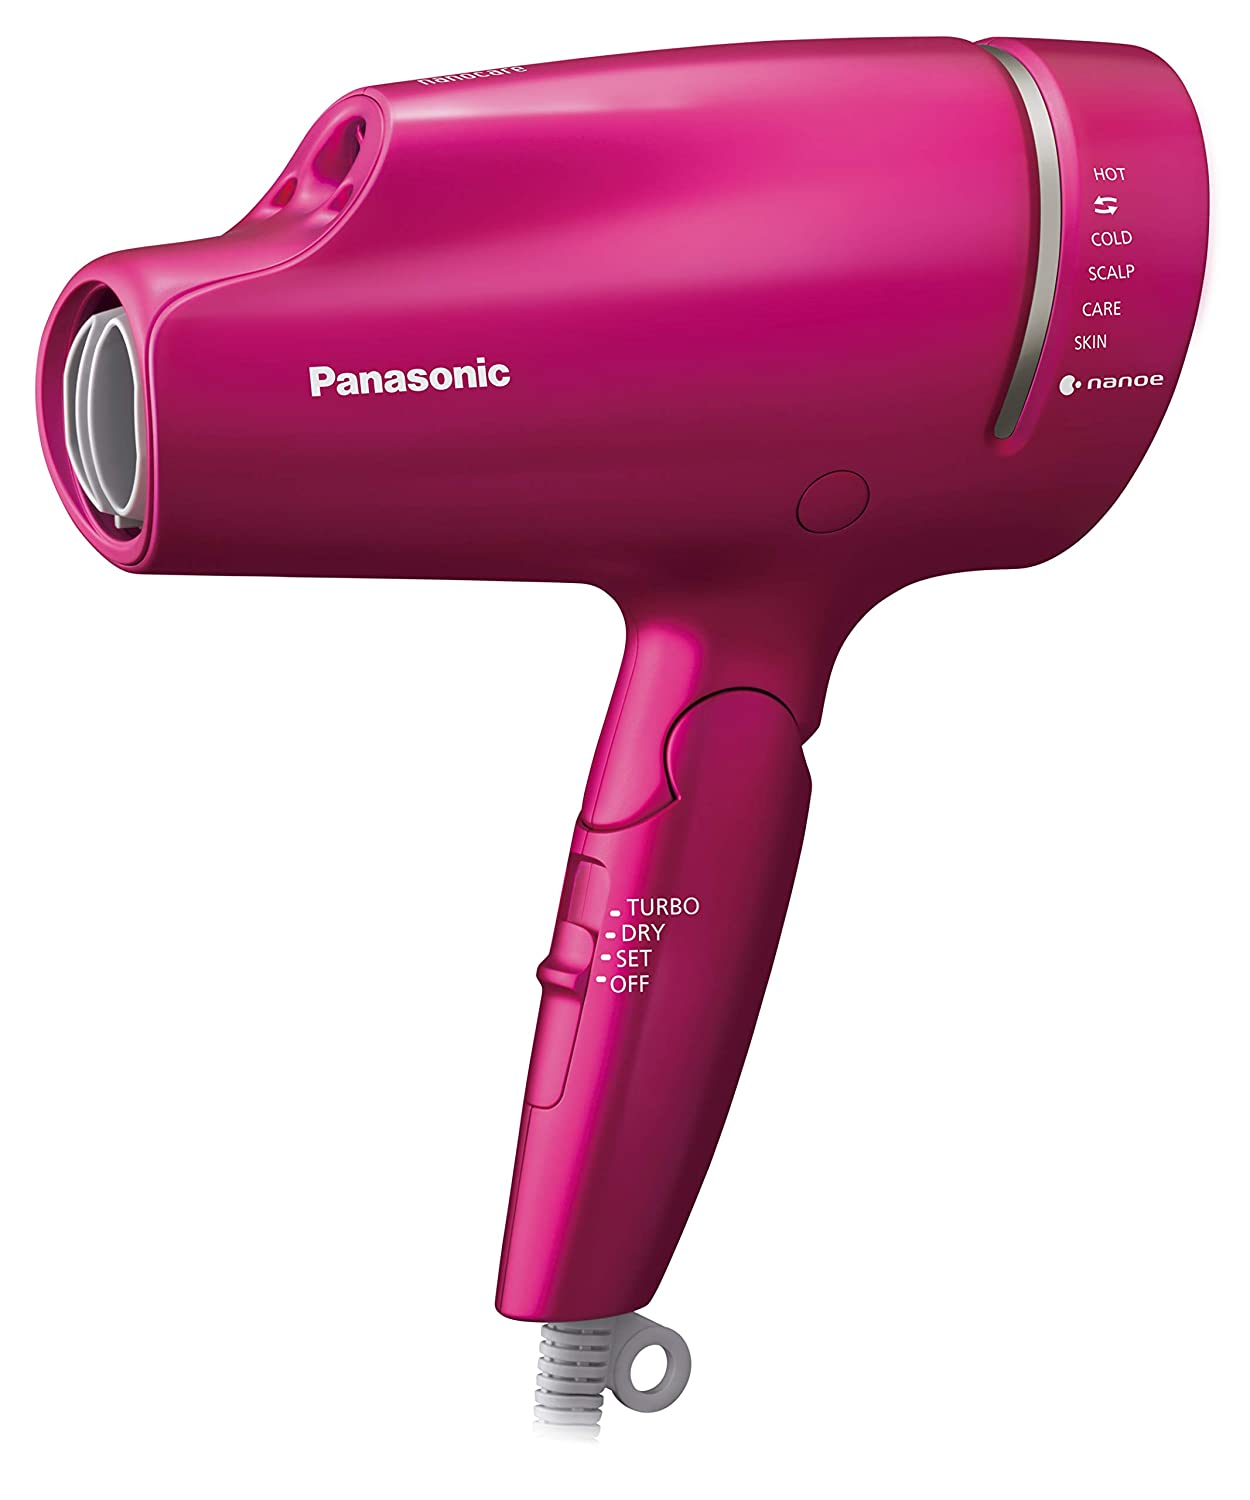 top 10 best hair dryers 2020 best blowdryers for every hair need herstylecode 1 Top 10 Best Hair Dryers 2021 - Best Blowdryers for Every Hair Need